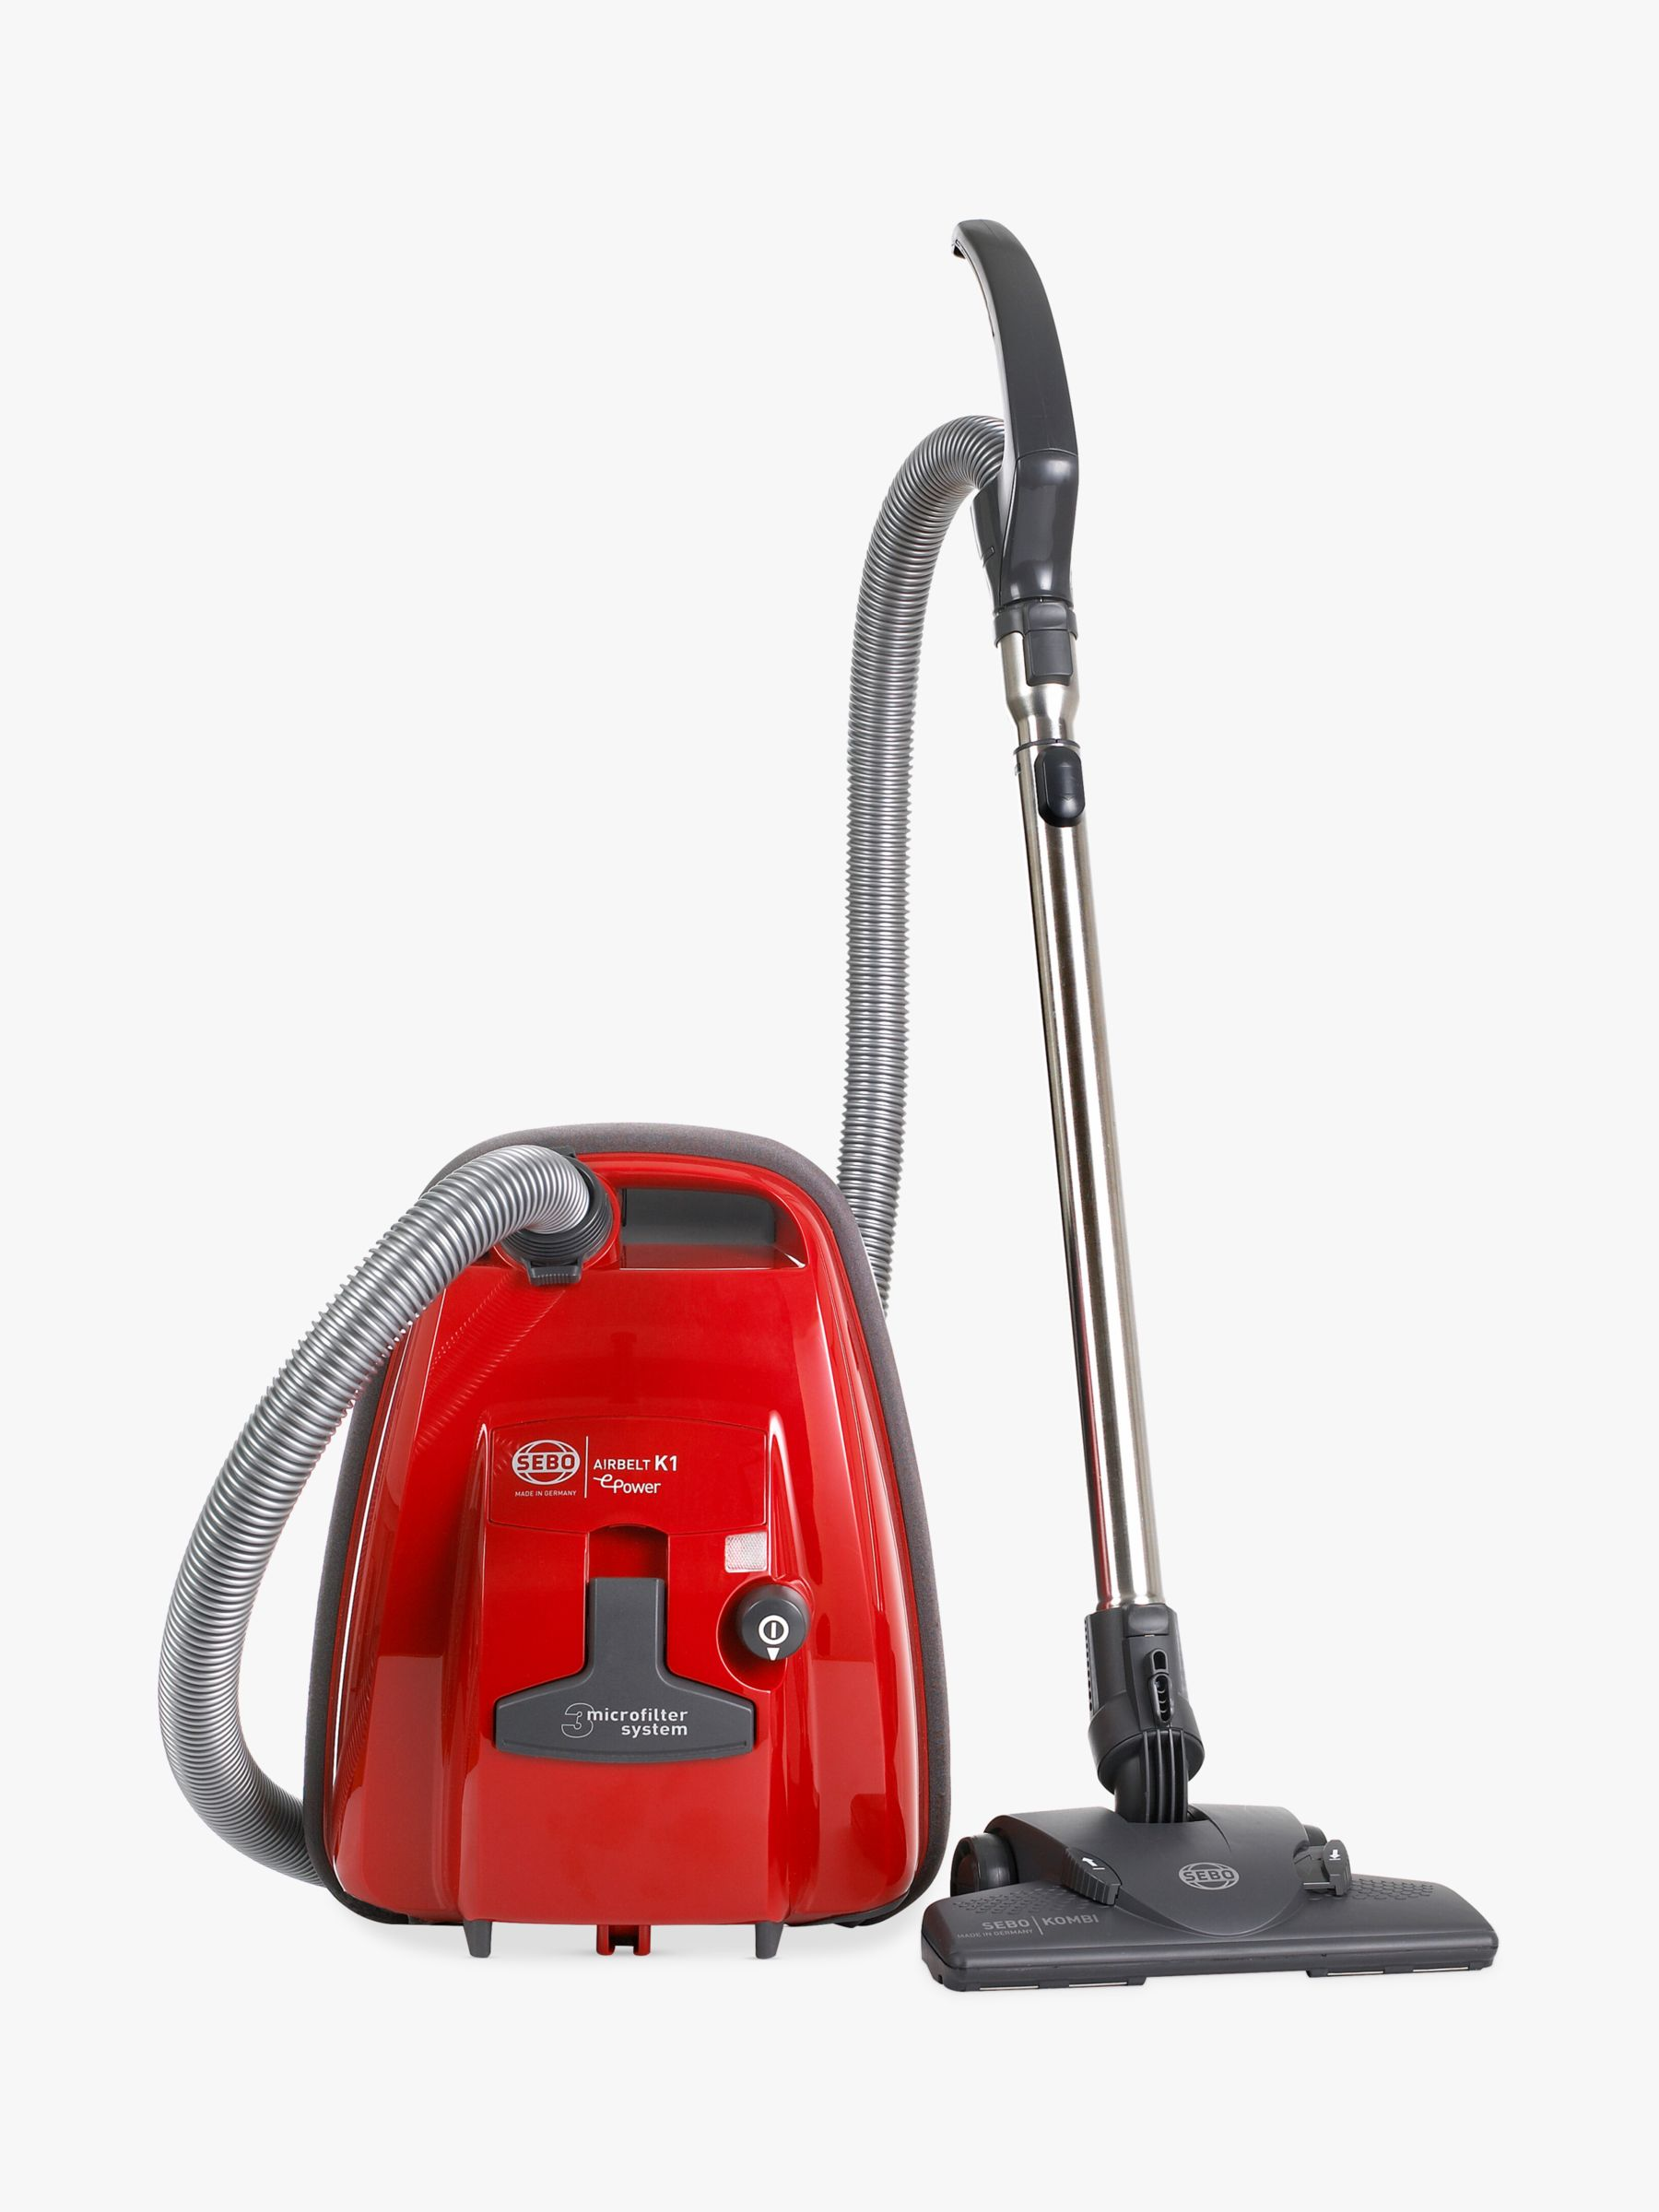 Sebo SEBO Airbelt K1 ePower Vacuum Cleaner, Red